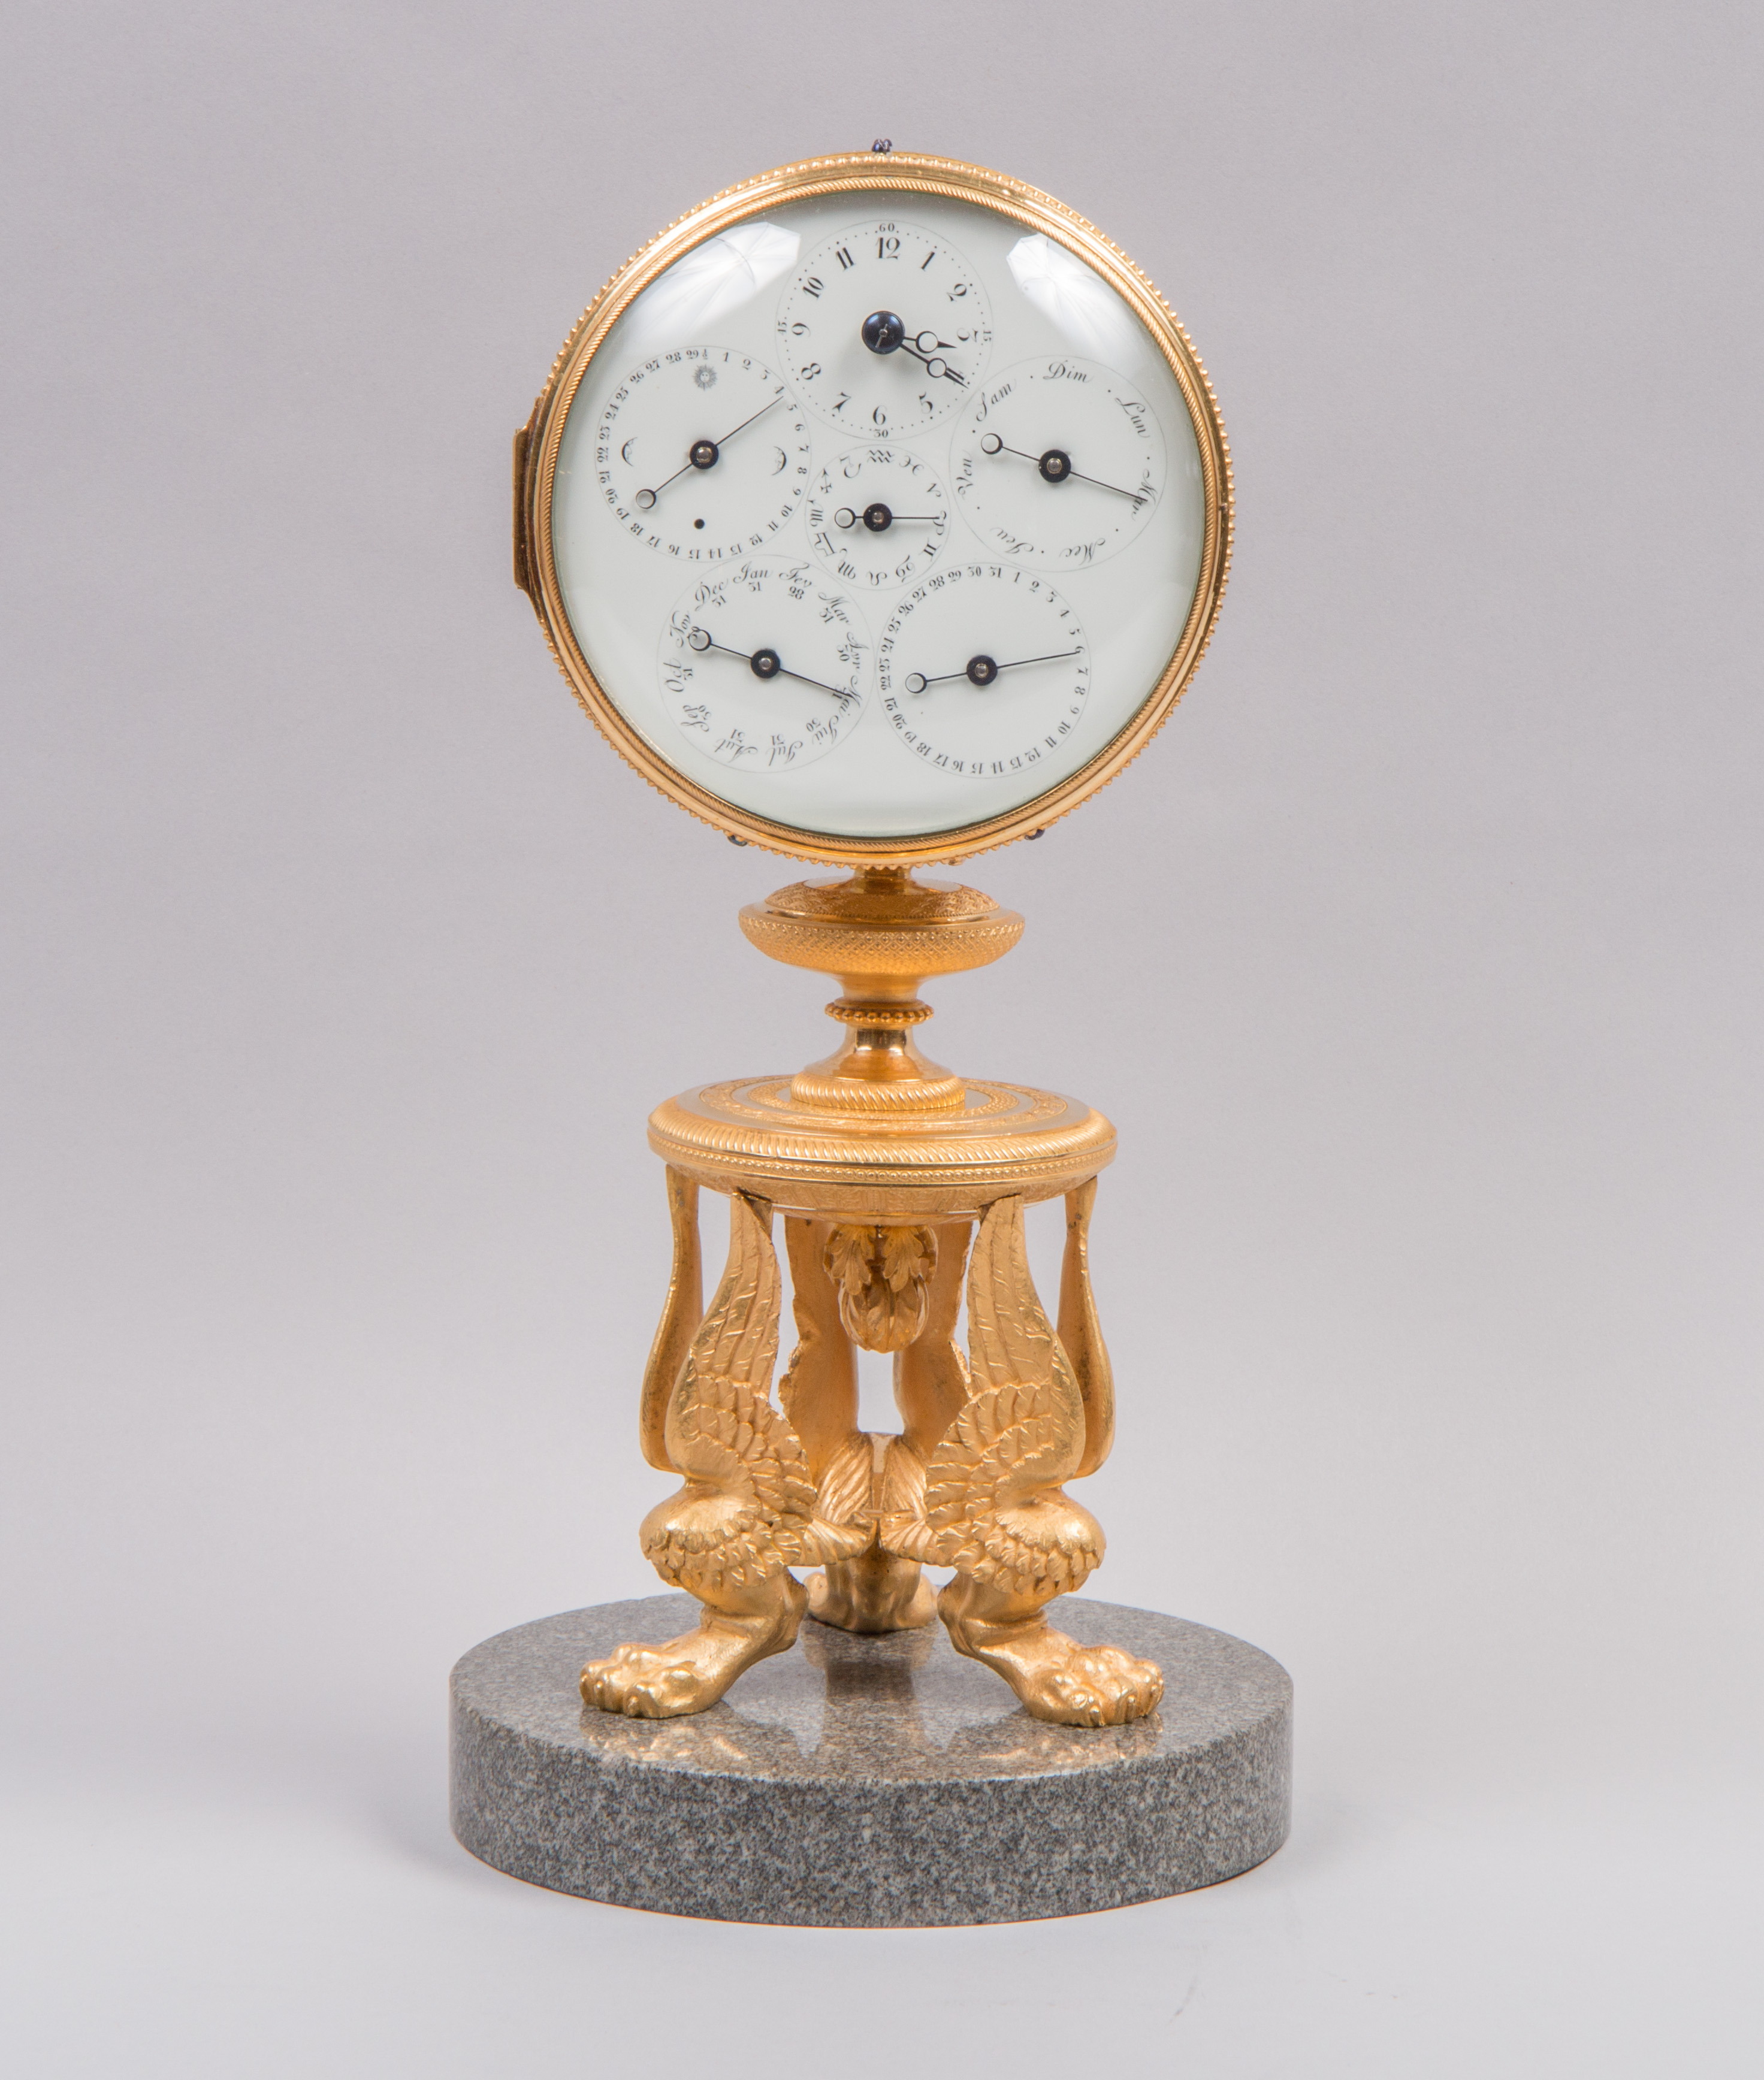 Empire table clock with eternal calendar, c. 1800.